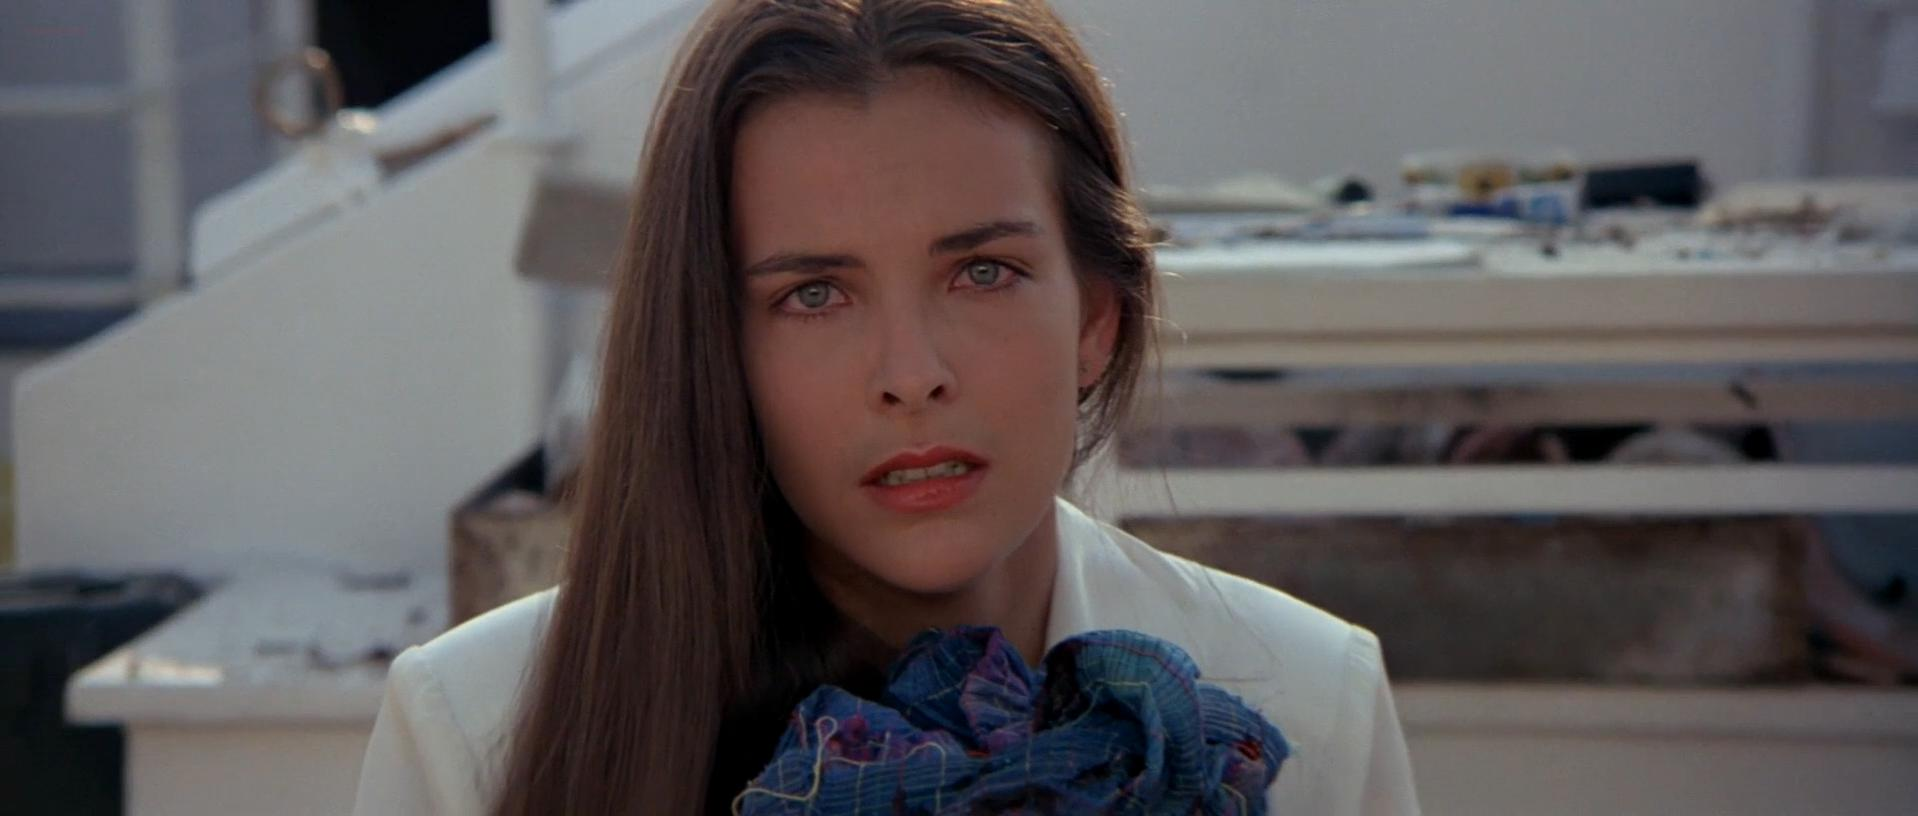 Carole Bouquet sexy, Lynn-Holly Johnson sexy - For Your Eyes Only (1981)